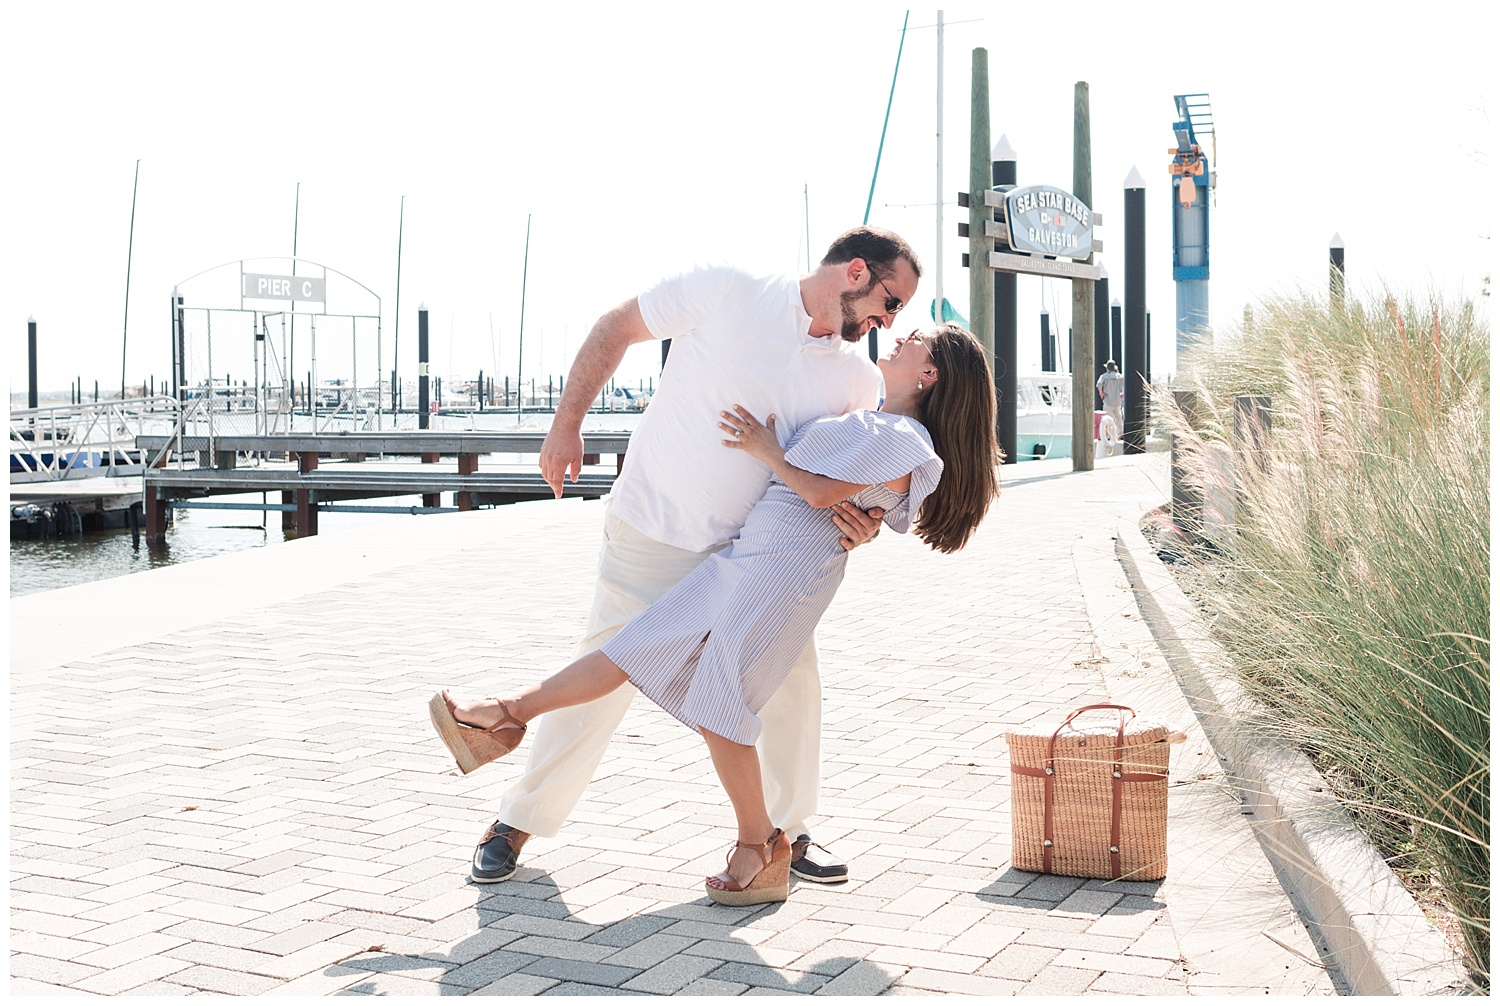 Texas Wedding Photographer | Sarah + Russell's Nautical Themed Engagement Session in Galveston